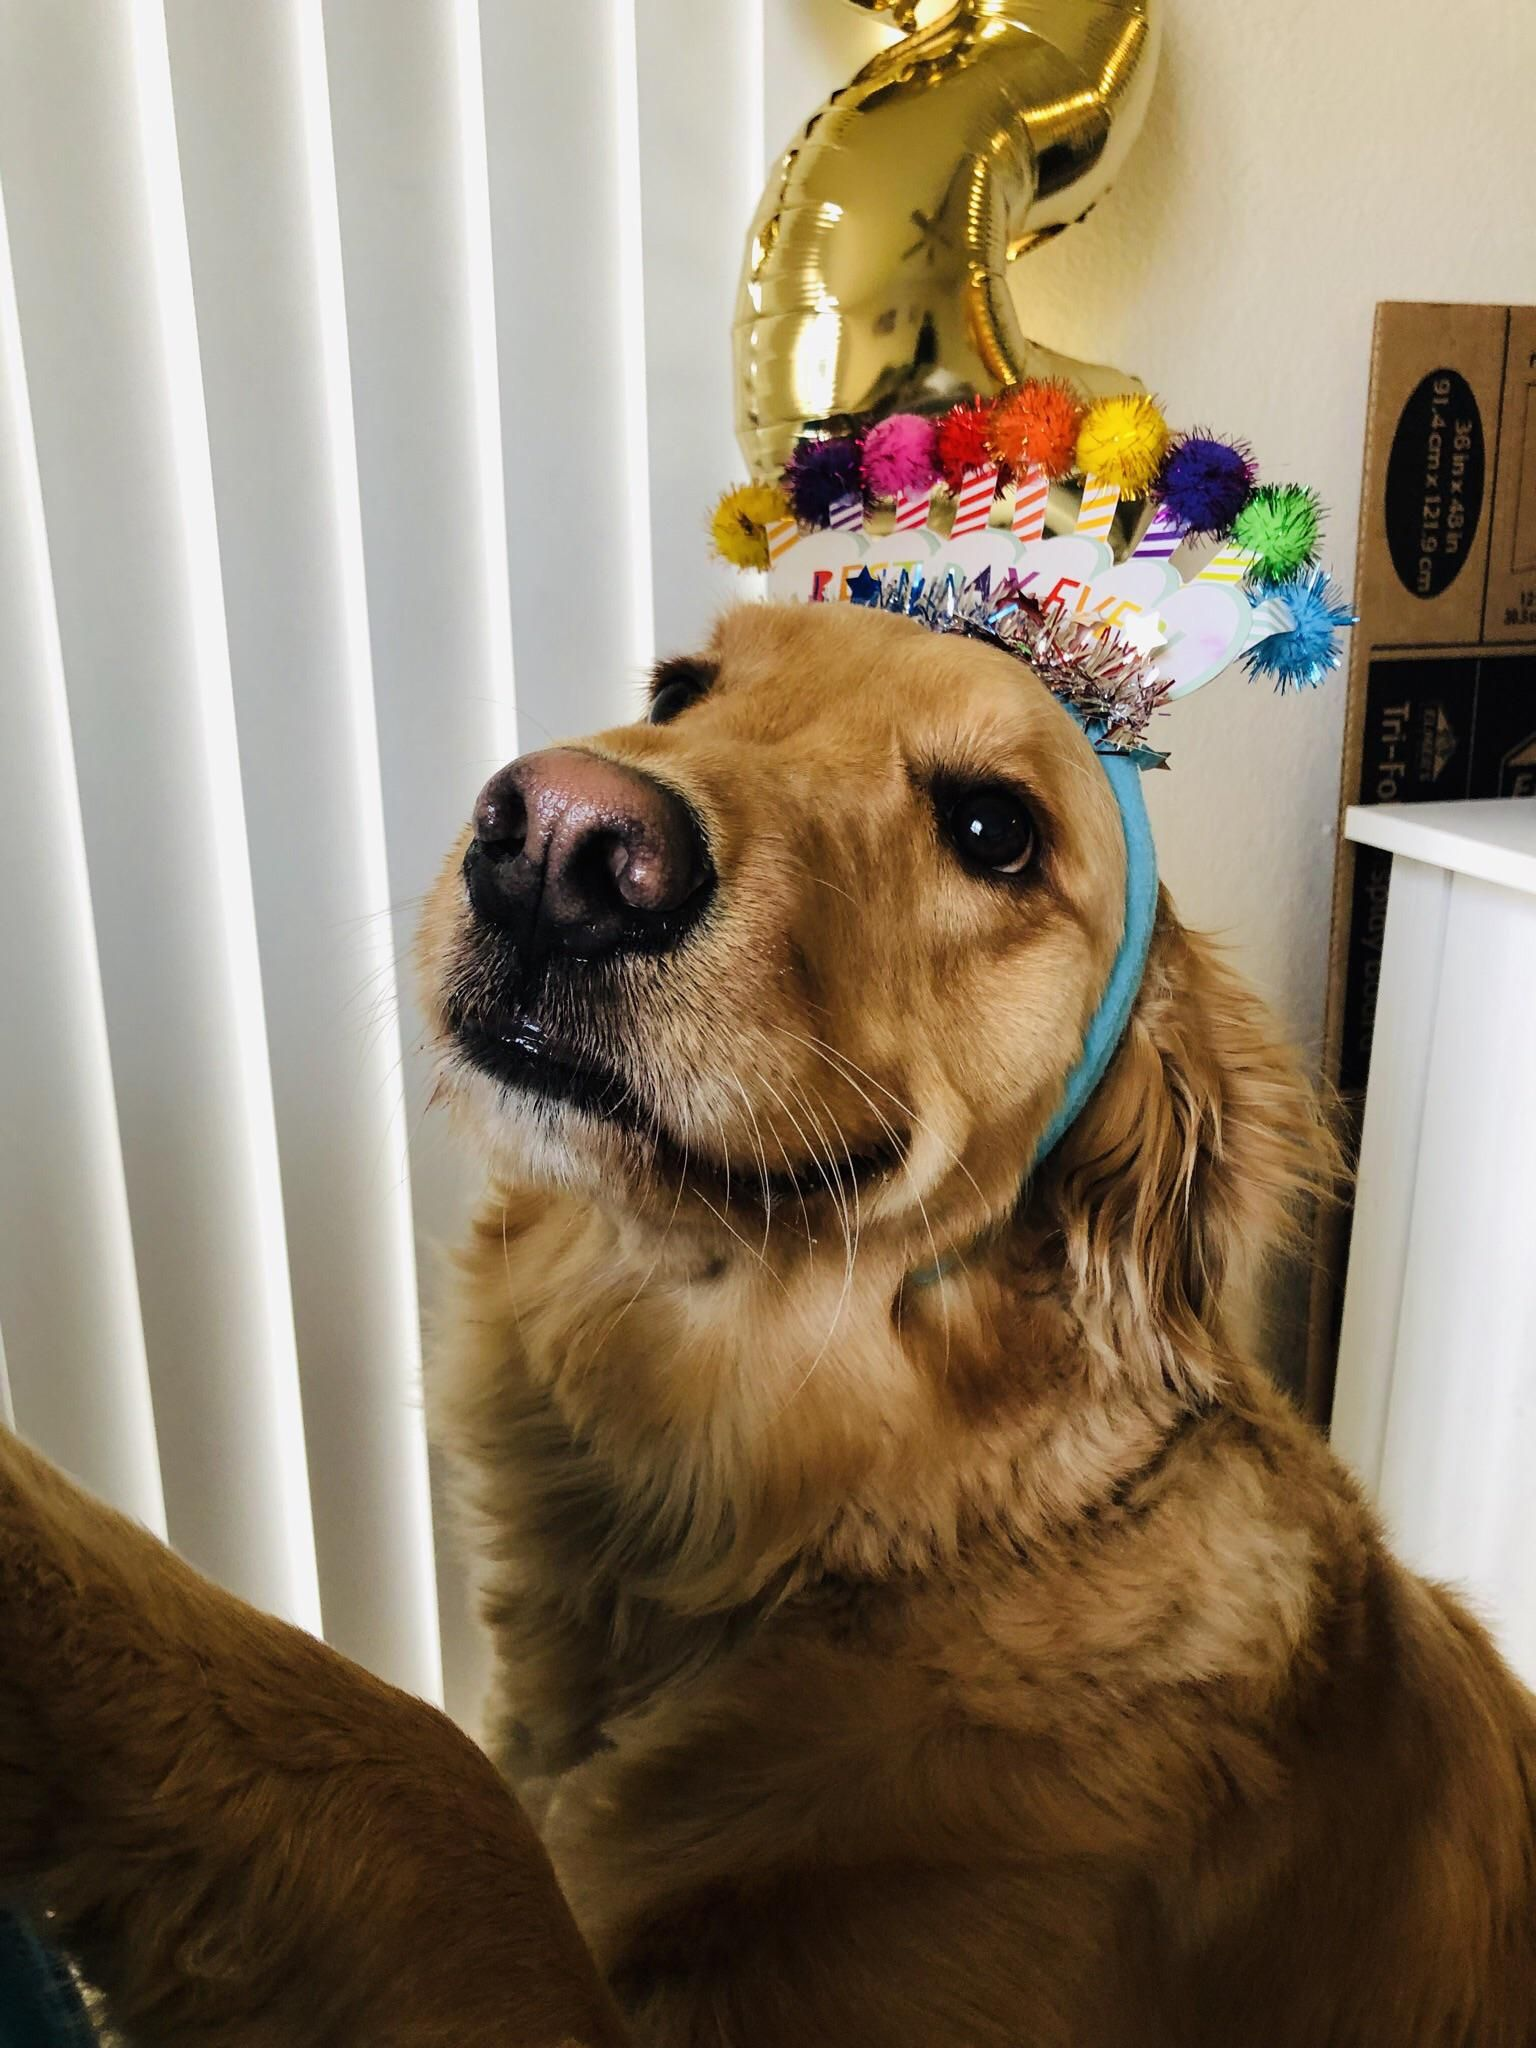 Here Is My Princess On Her 2nd Birthday In 2020 Cute Cats And Dogs Golden Retriever Dogs Golden Retriever